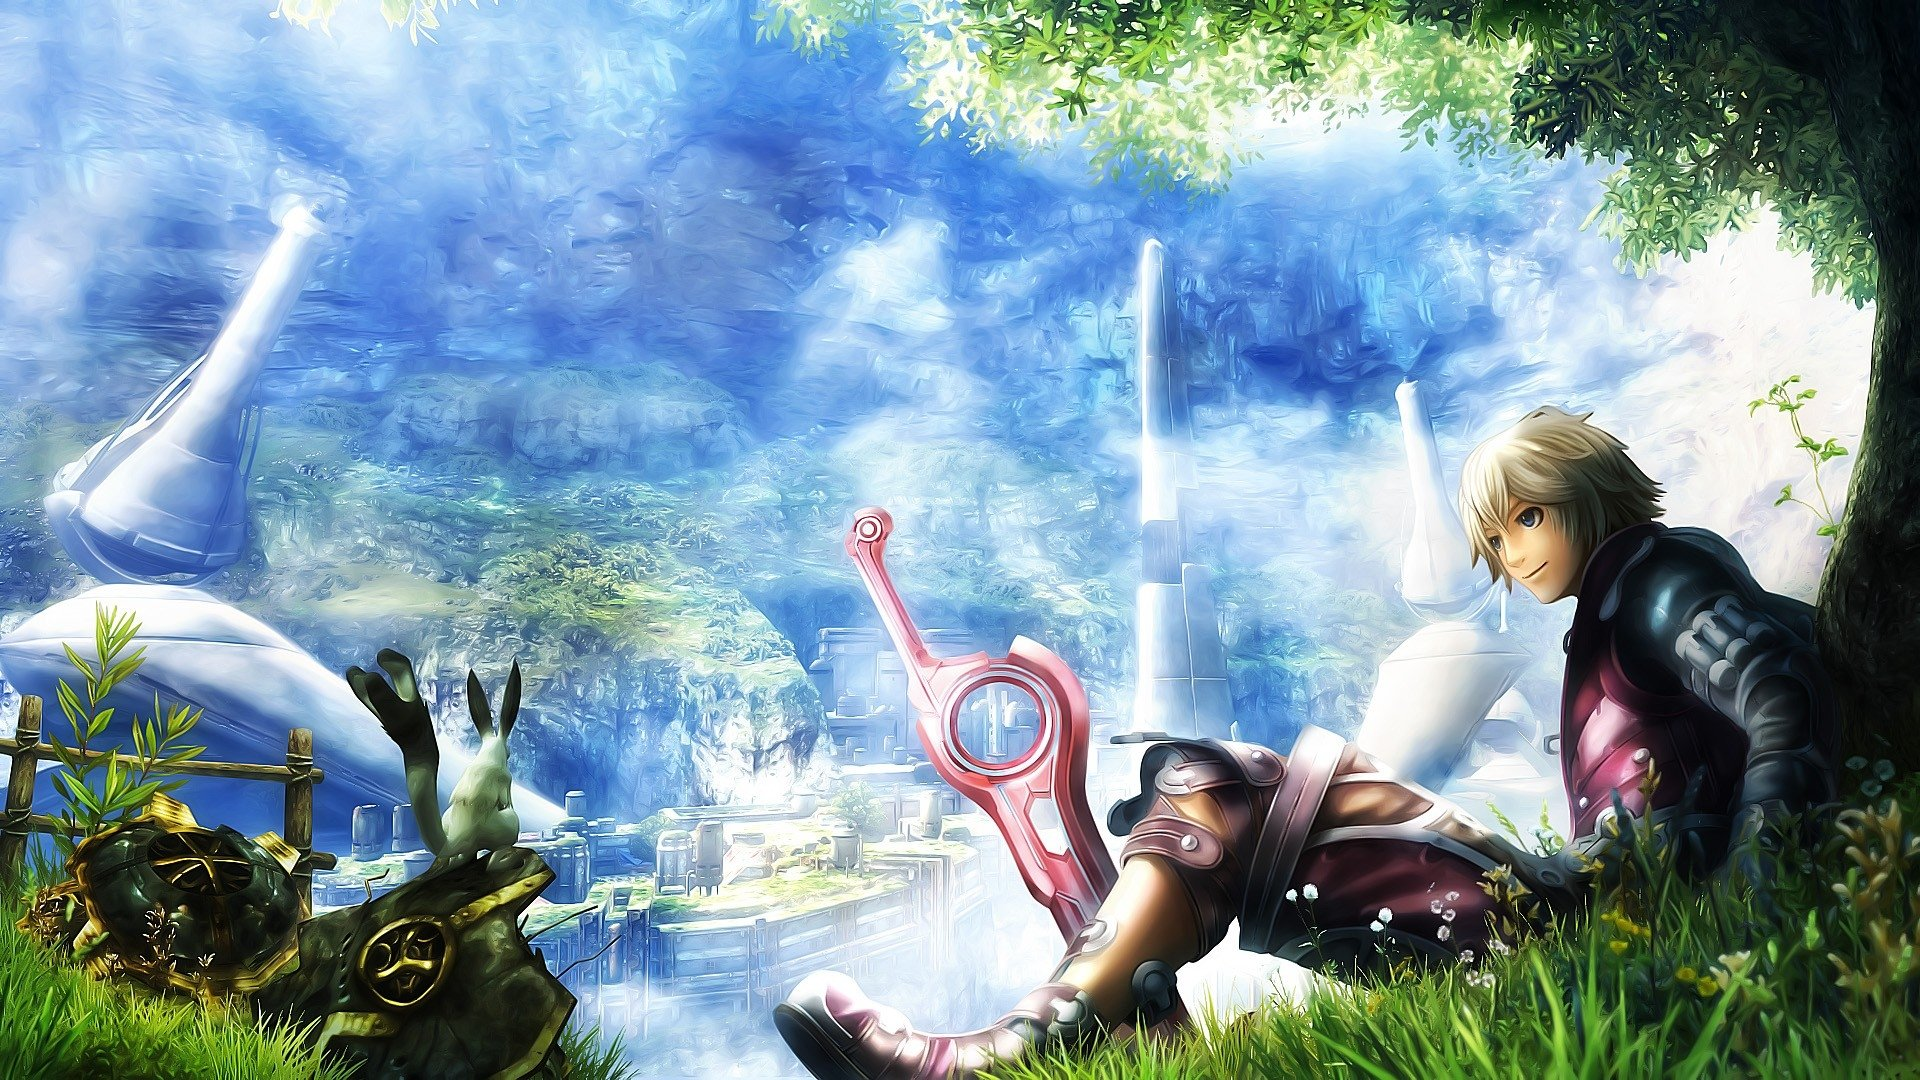 Xenoblade Chronicles HD Wallpaper Background Image 1920x1080 1920x1080